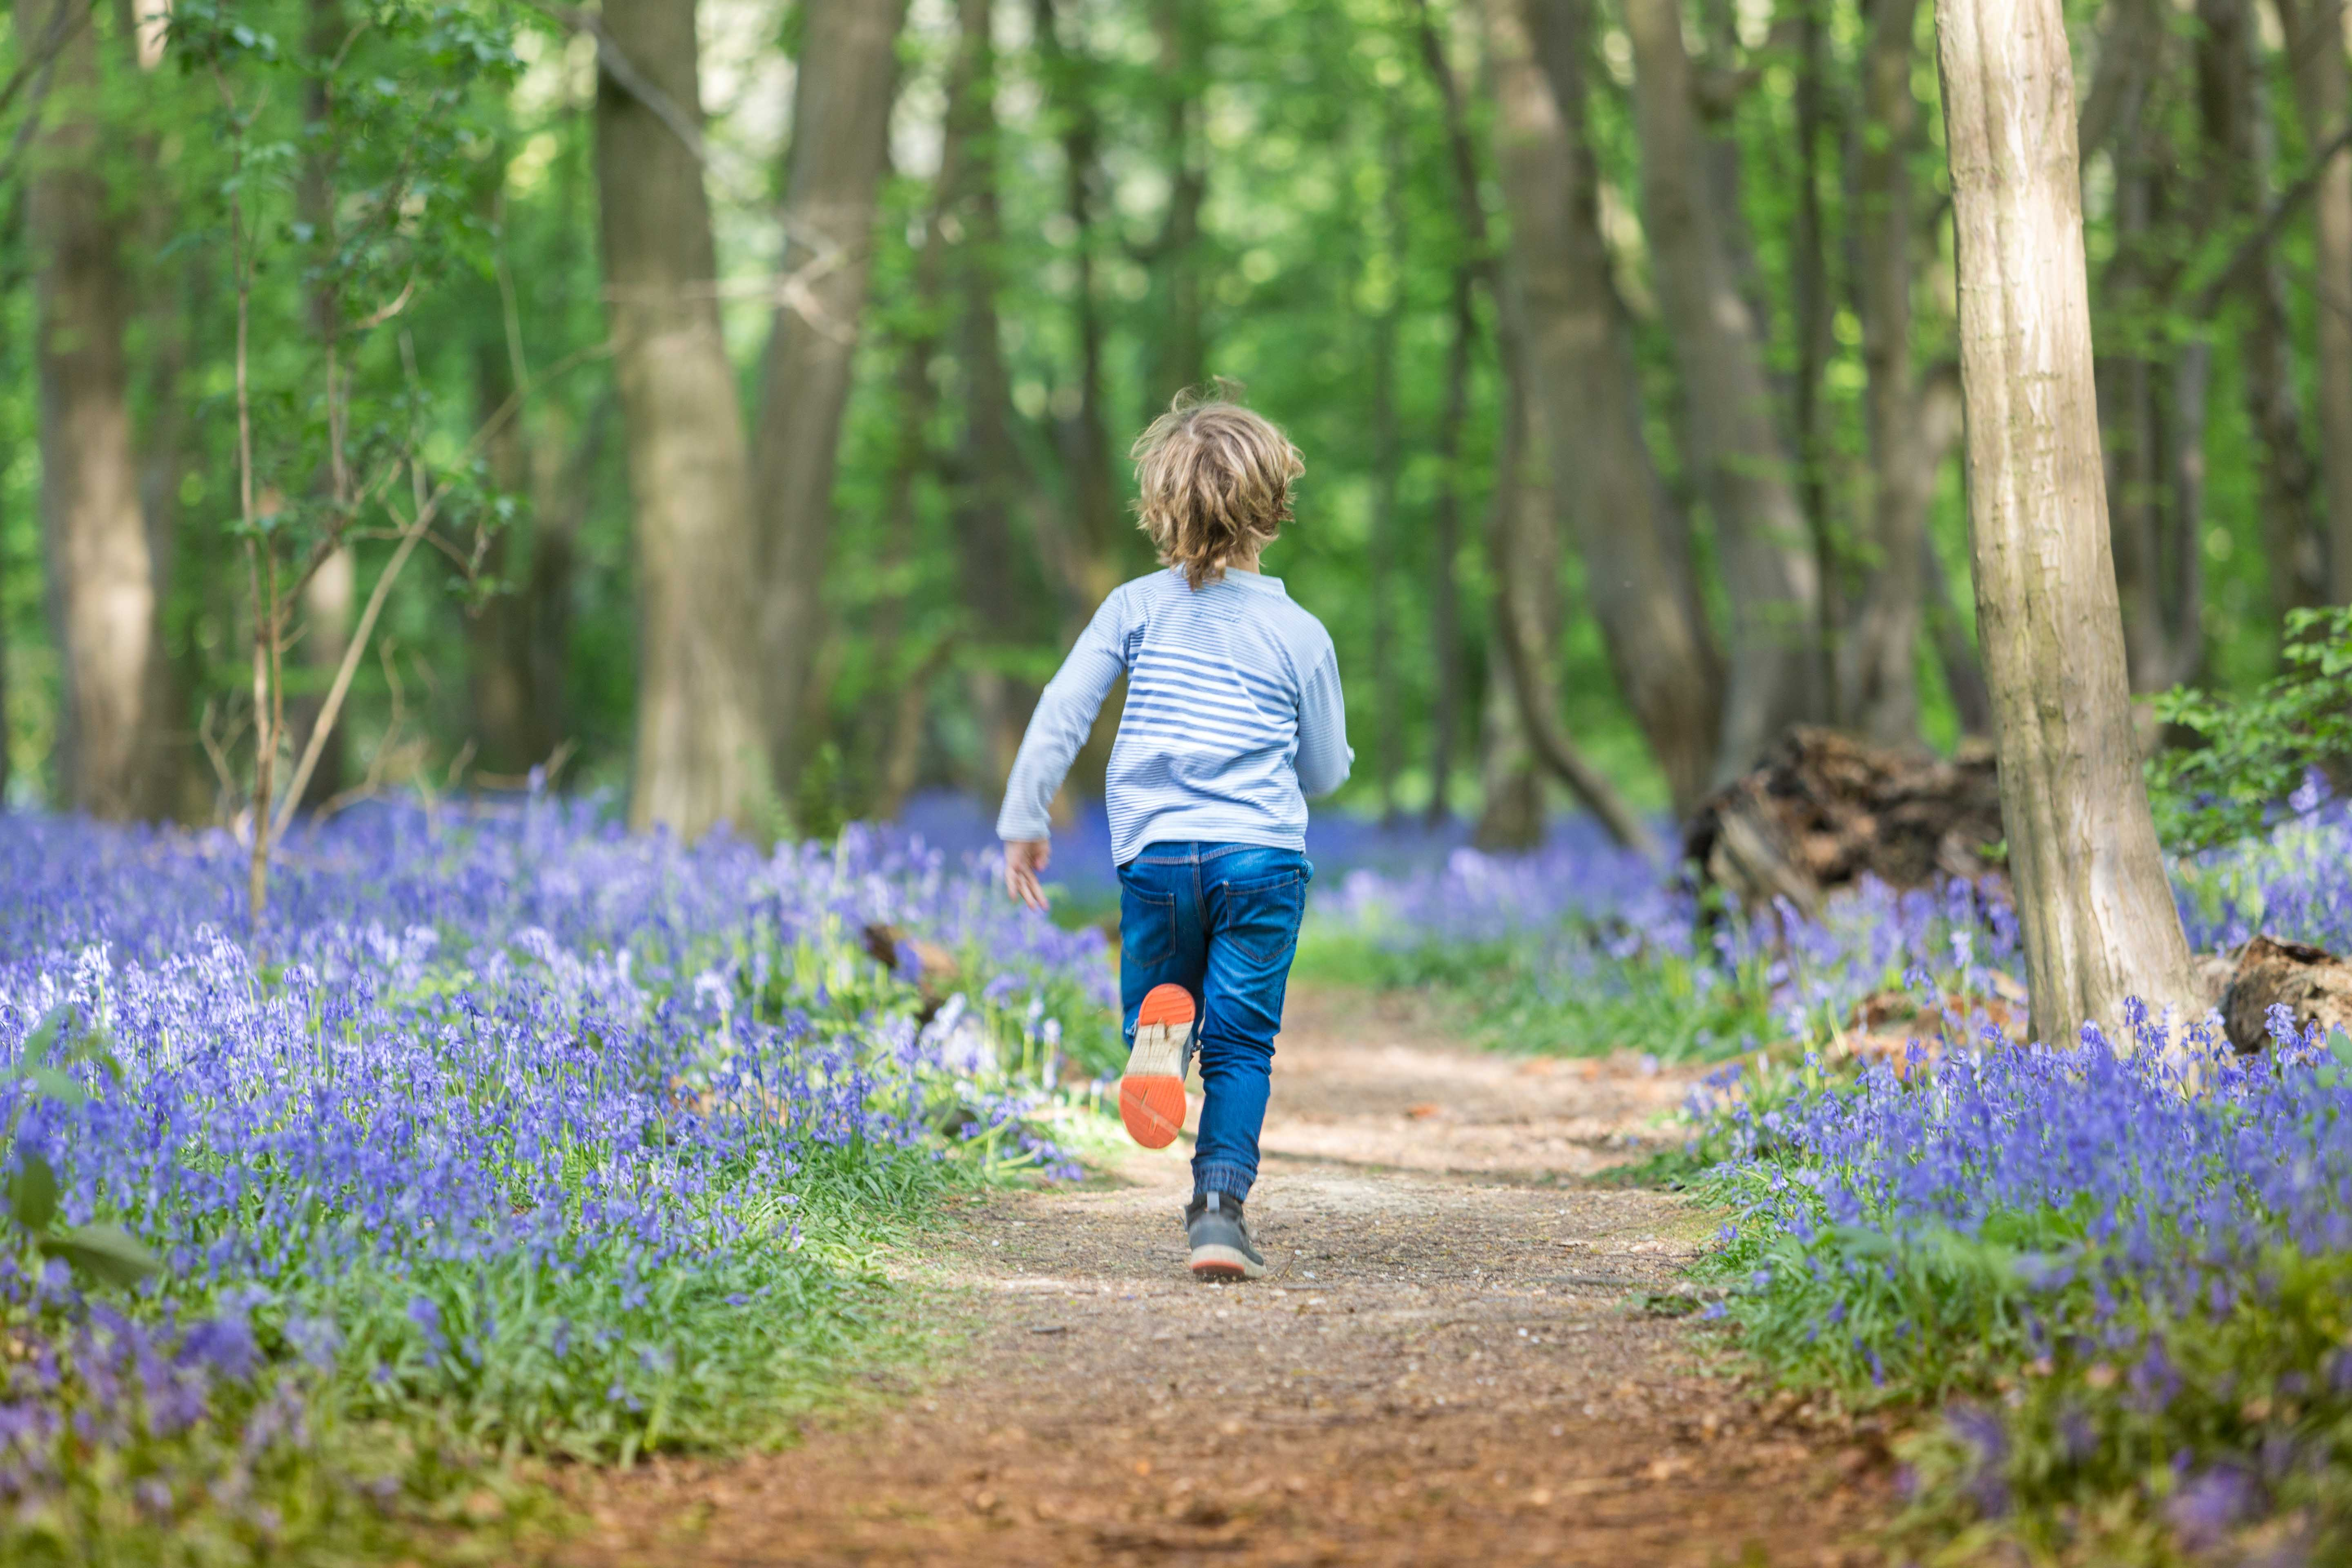 family outdoors St Albans bluebells photographer photoshoot